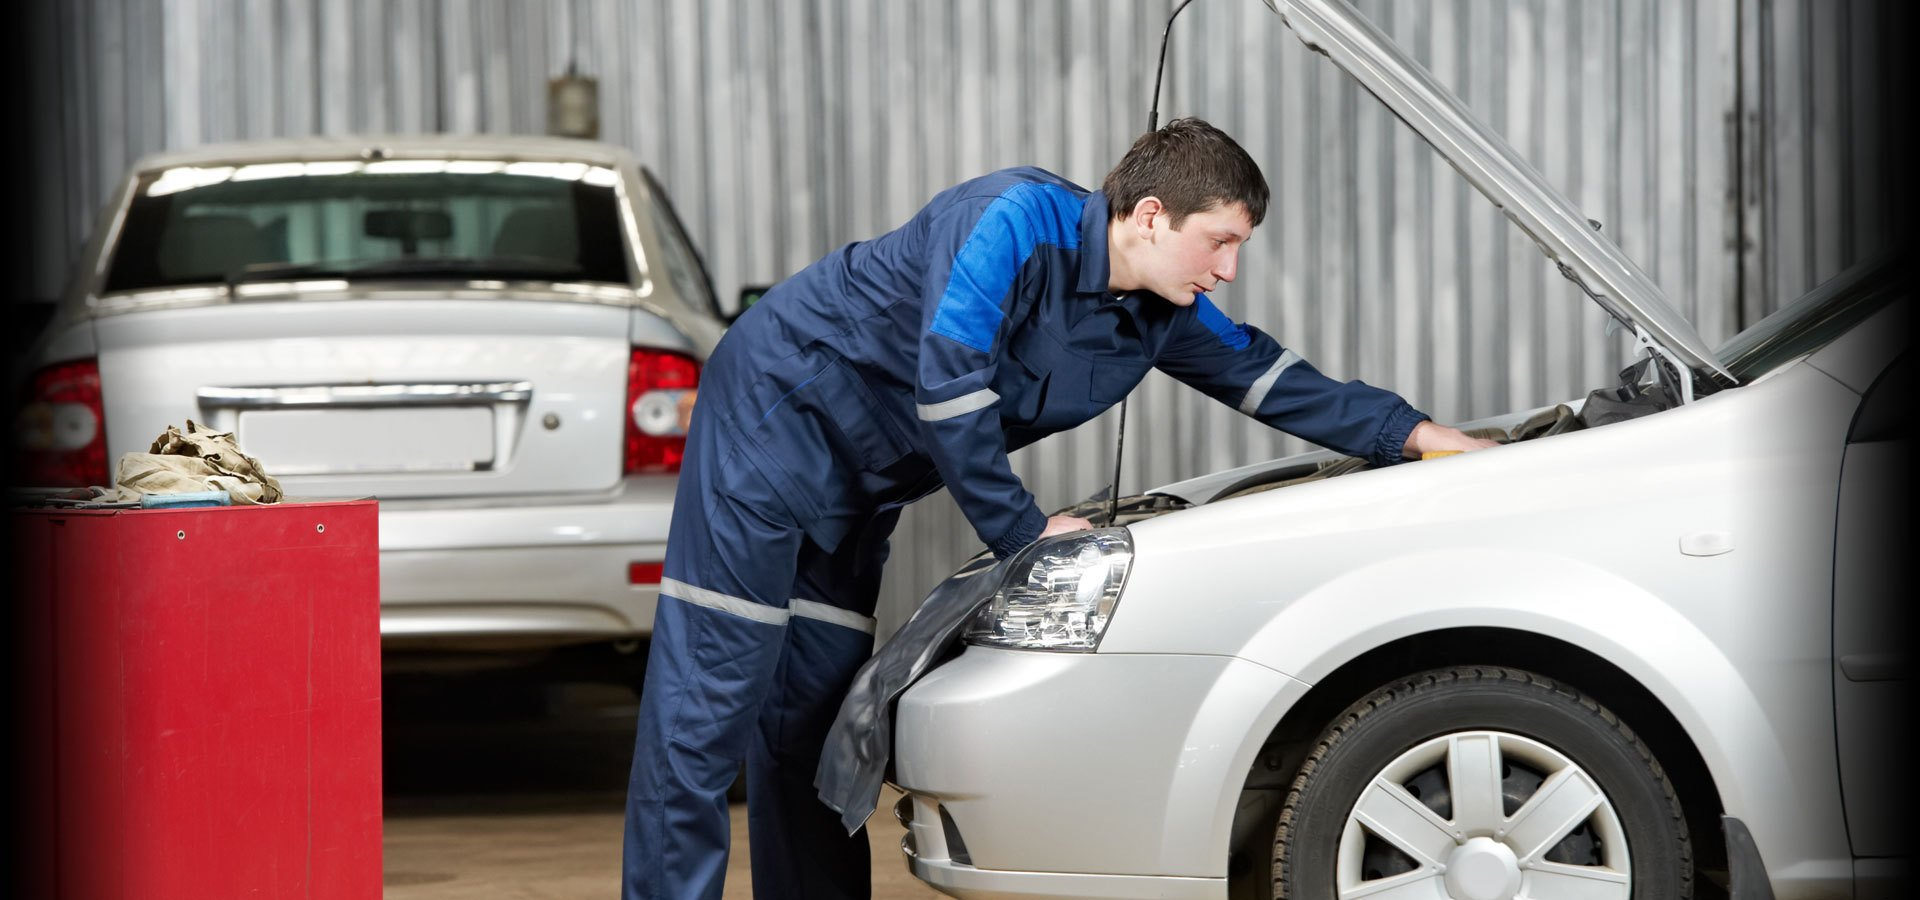 Mechanic in blue overalls working on a car